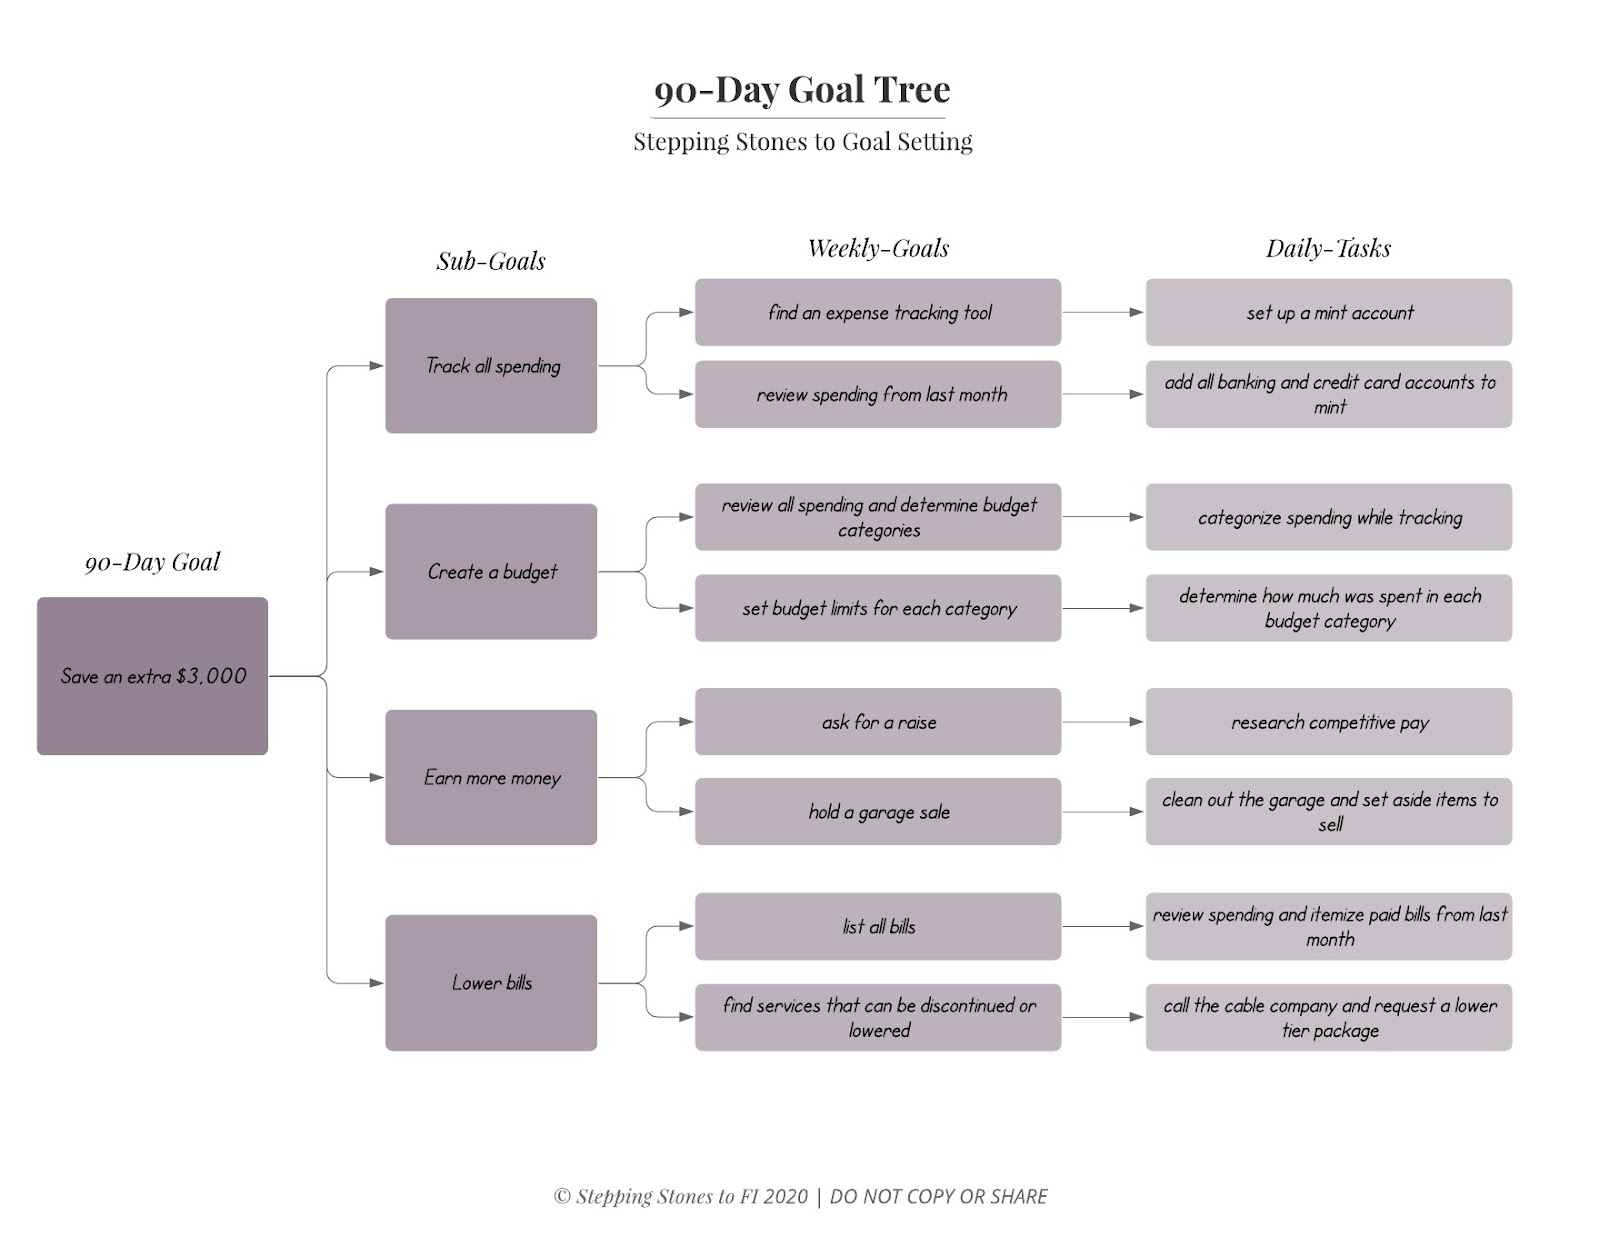 Example of a 90-Day short-term financial goal tree